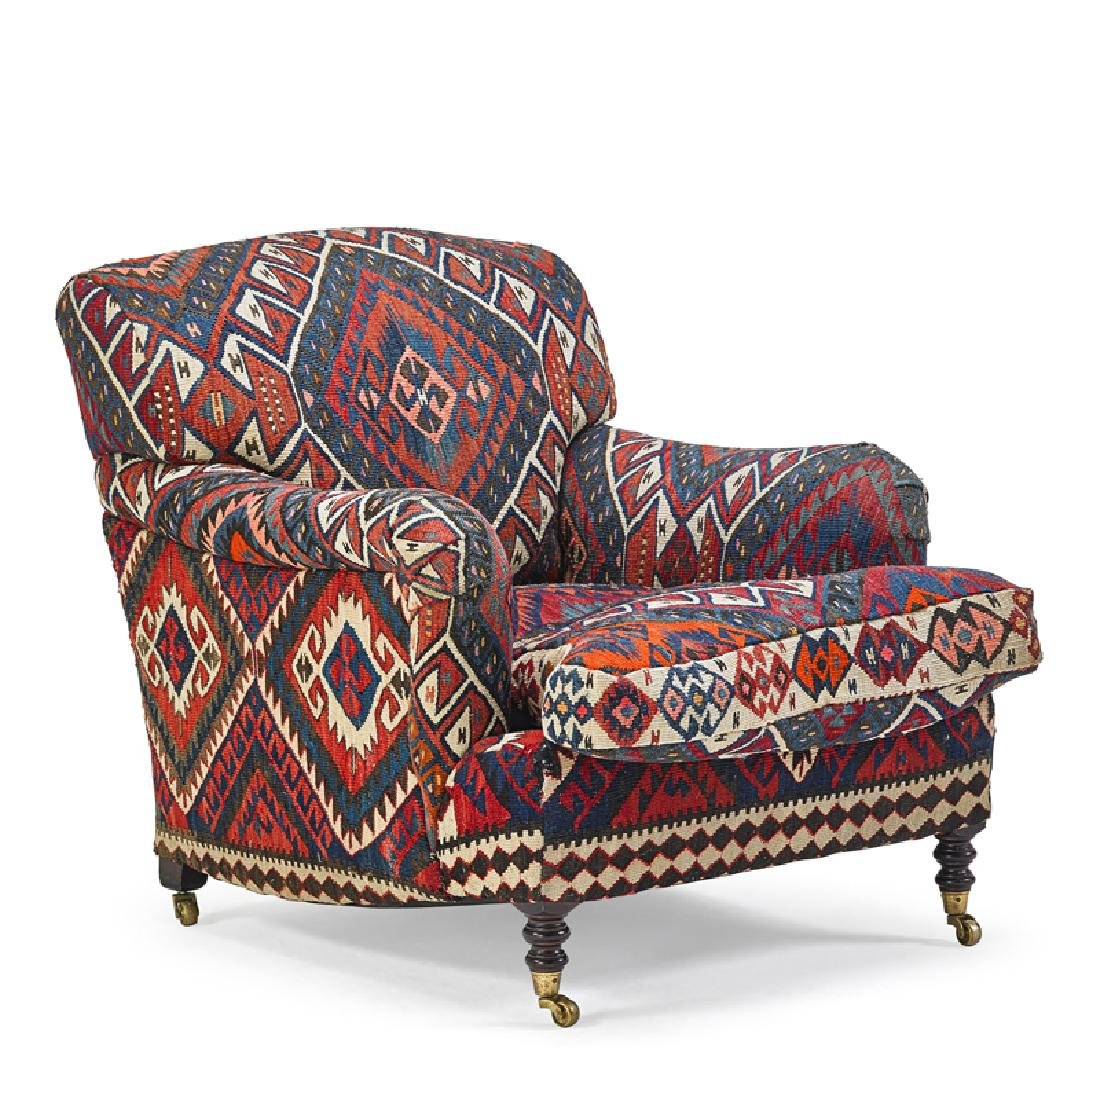 GEORGE SMITH KILIM UPHOLSTERED CHAIR